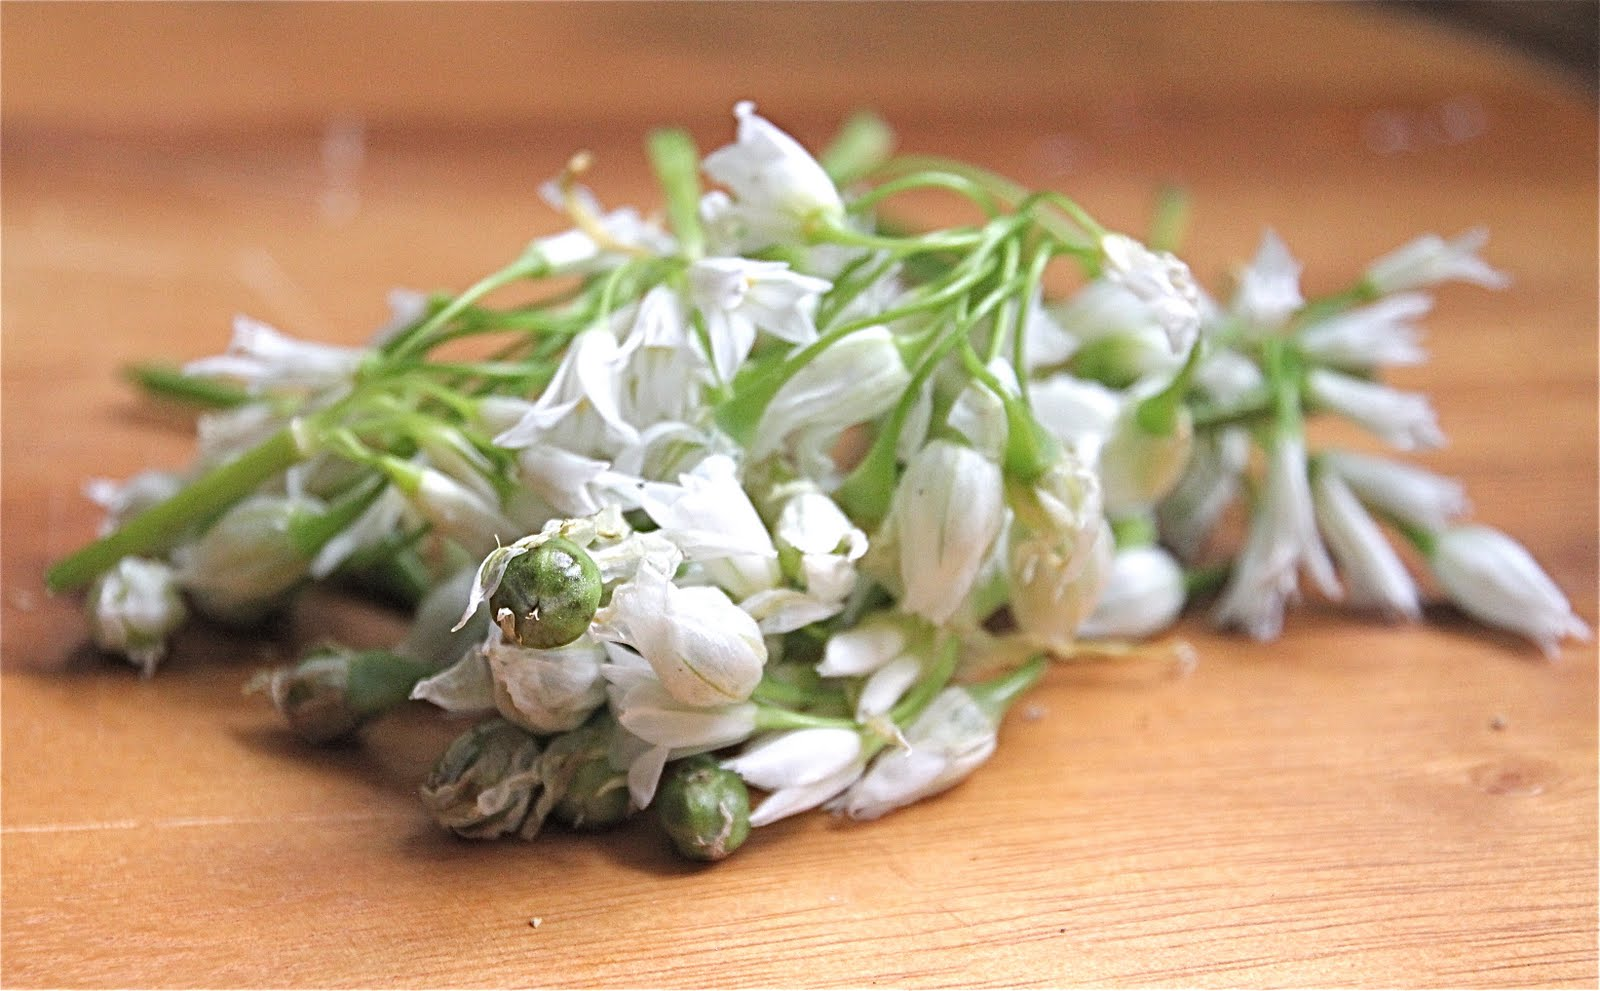 Arugula Flowers Are Edible And Make A Beautiful Garnish For Salad